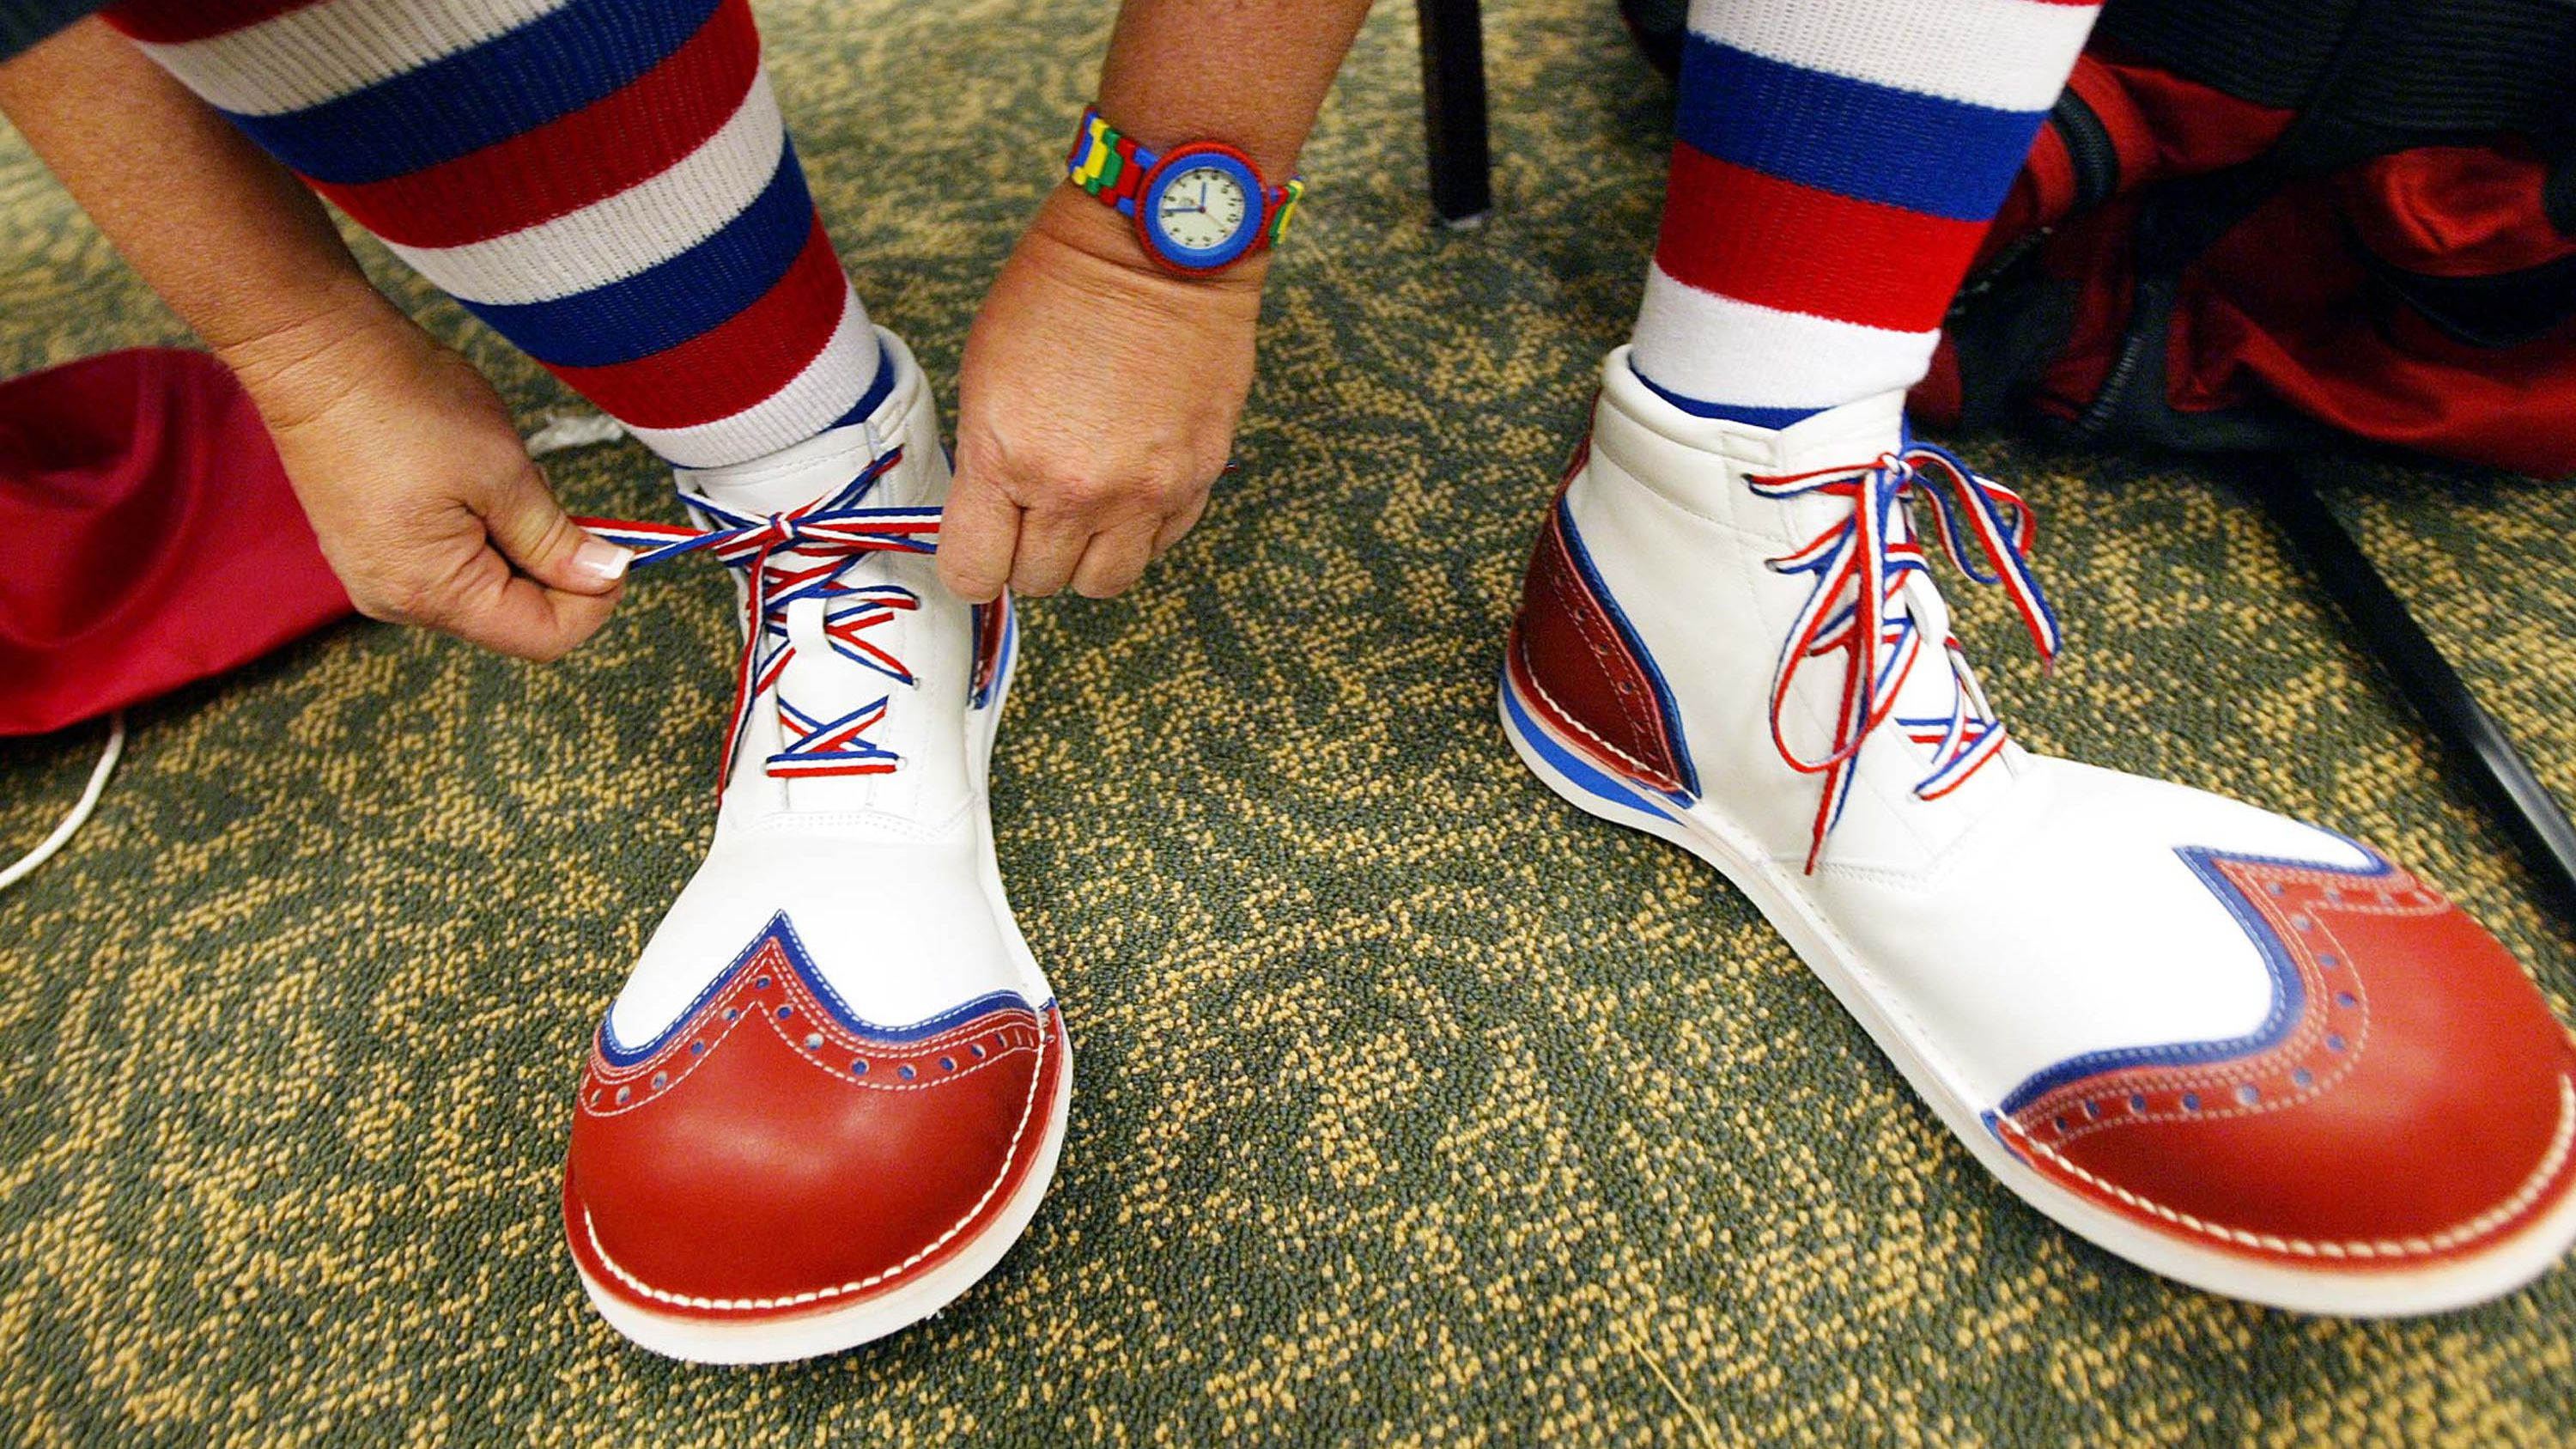 What Is 'Clownshoes' In Online Jargon?